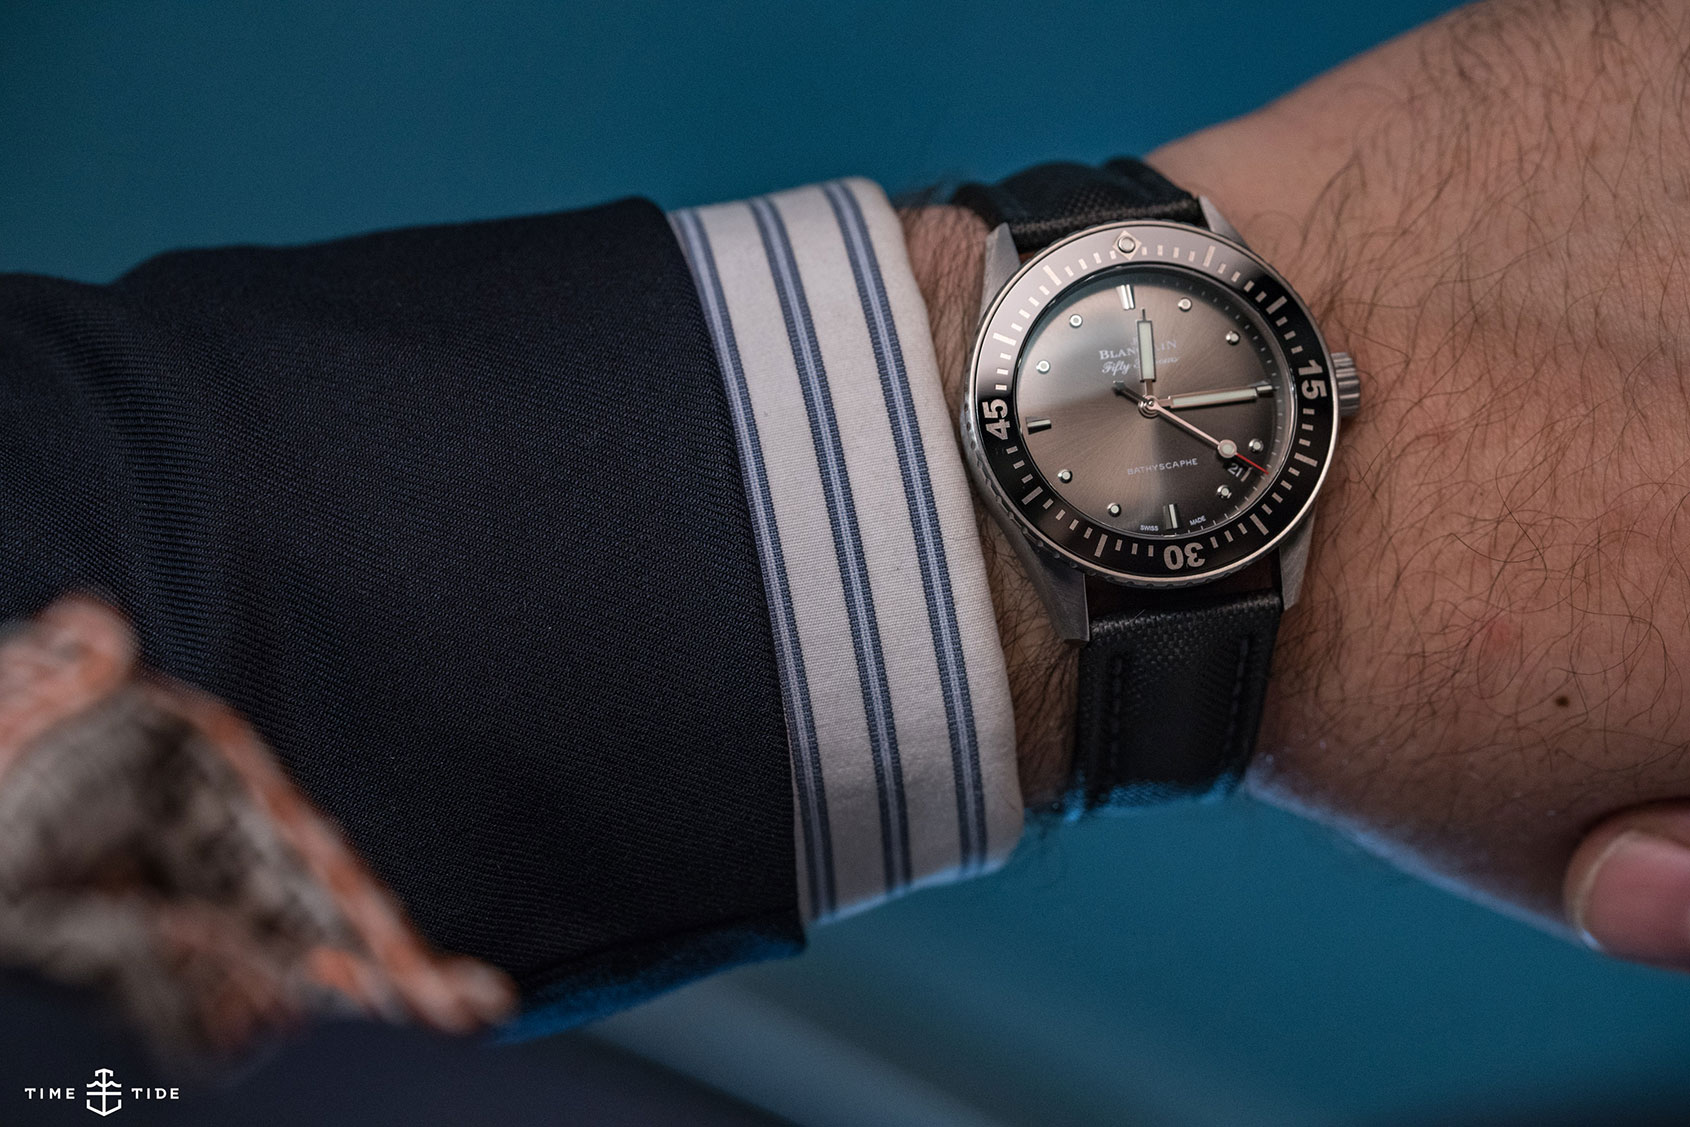 Blancpain Fifty Fathoms Bathyscaphe 38mm – Hands-on Review